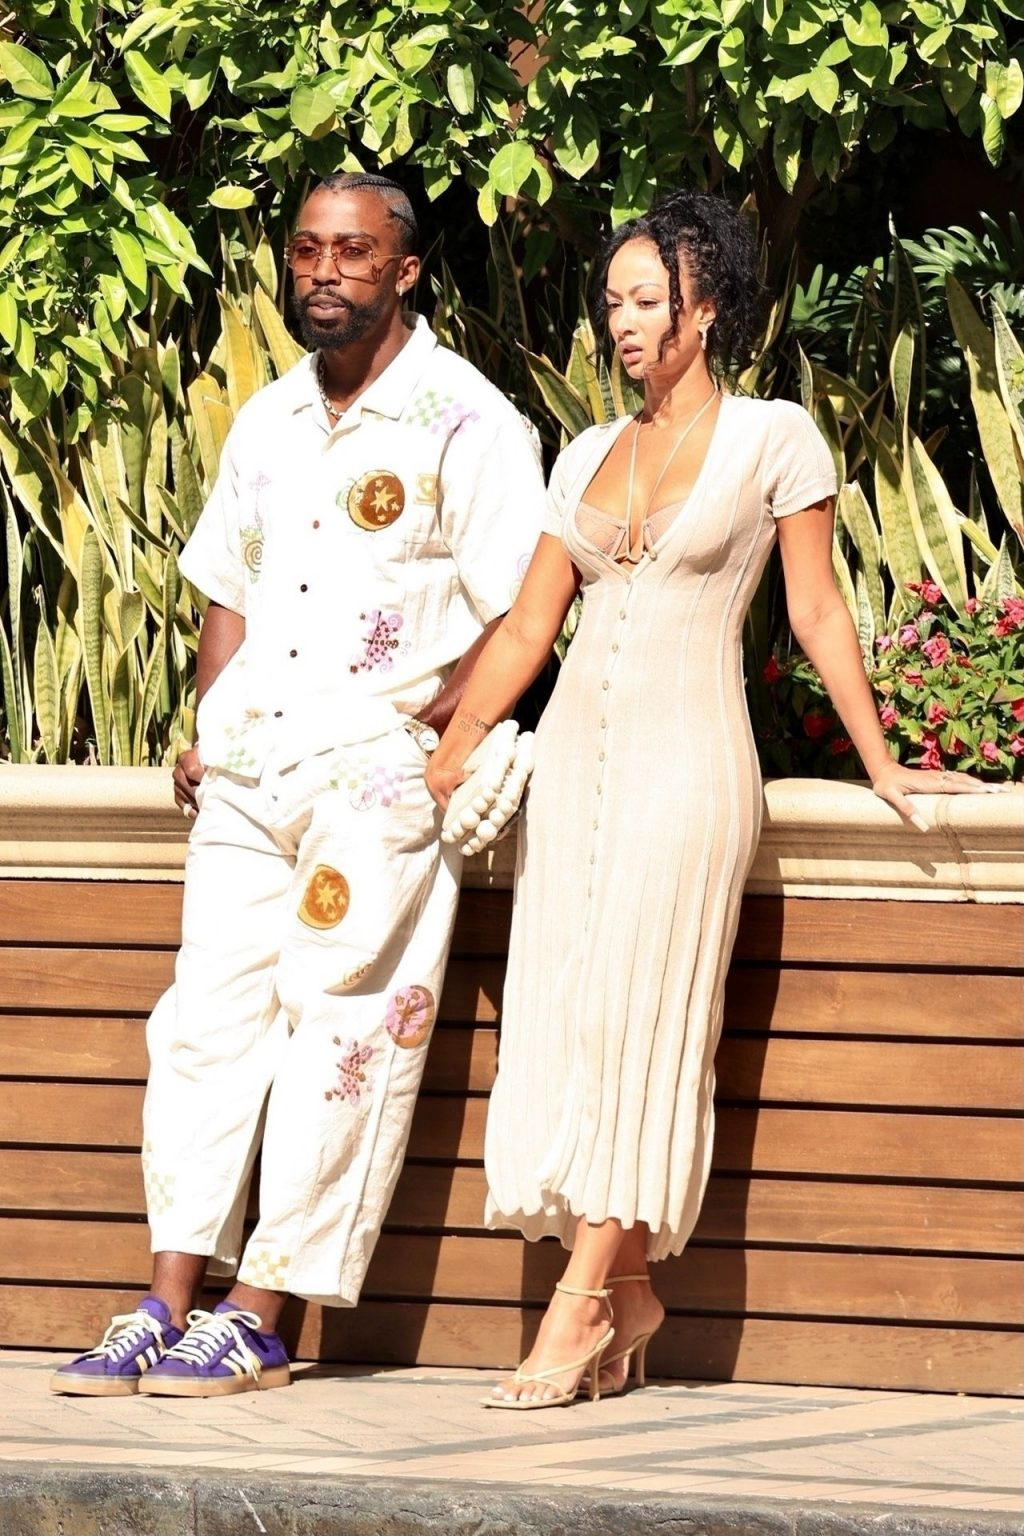 Draya Michele Puts on a Busty Display For Brunch with Her Boyfriend (56 Photos)